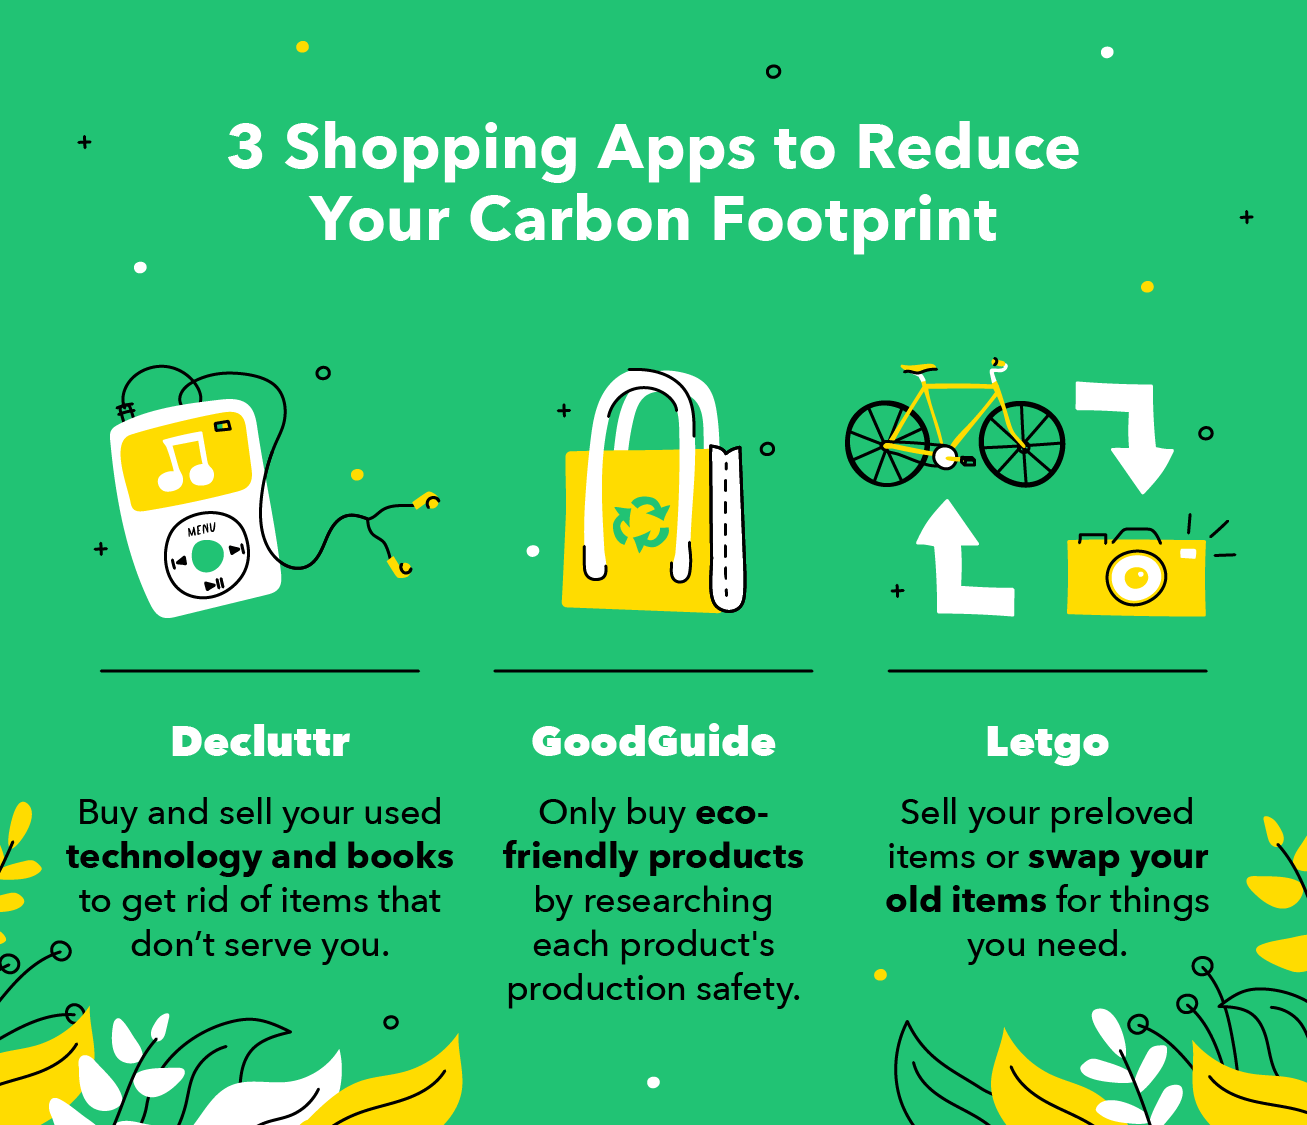 3 Shopping Apps to Reduce Your Carbon Footprint